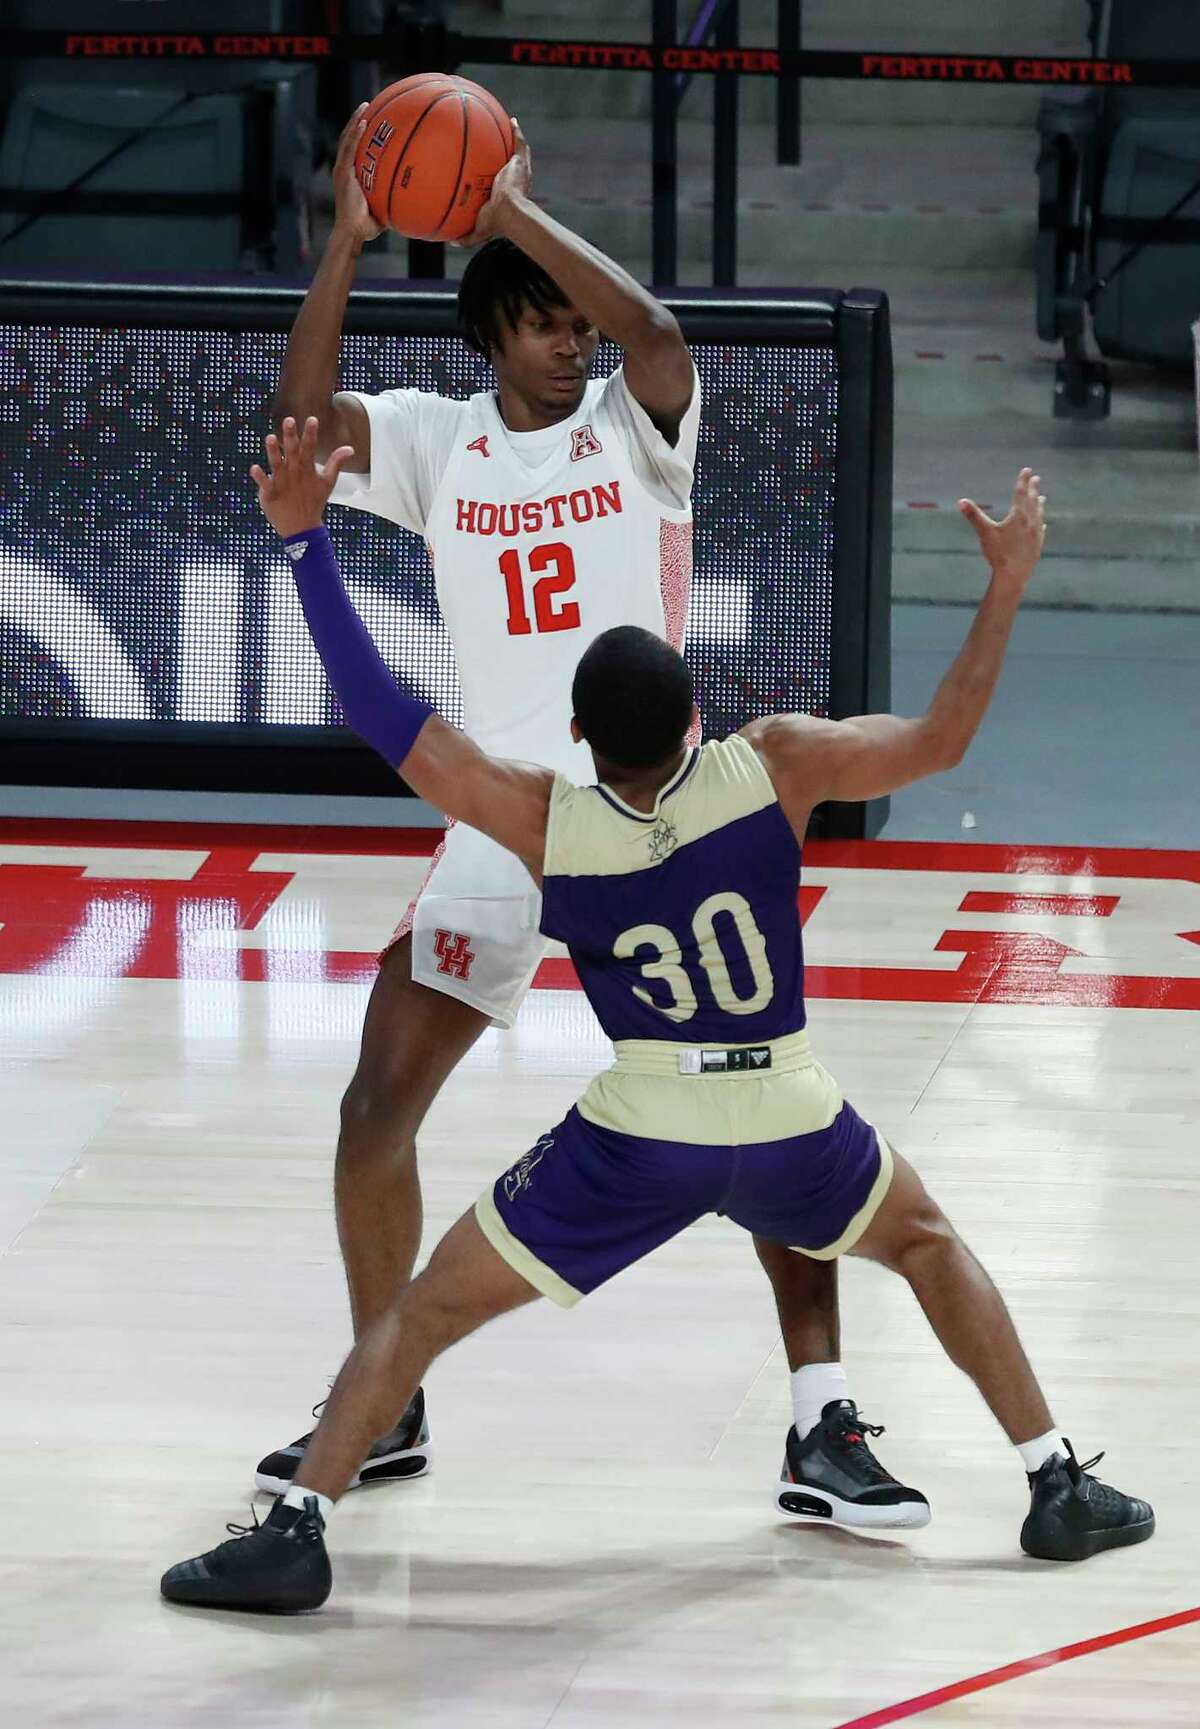 Houston Cougars guard Tramon Mark (12) works against Alcorn State Braves guard Byron Joshua (30) during the first half of an NCAA men's basketball game at Fertitta Center Sunday, December 20, 2020, in Houston.